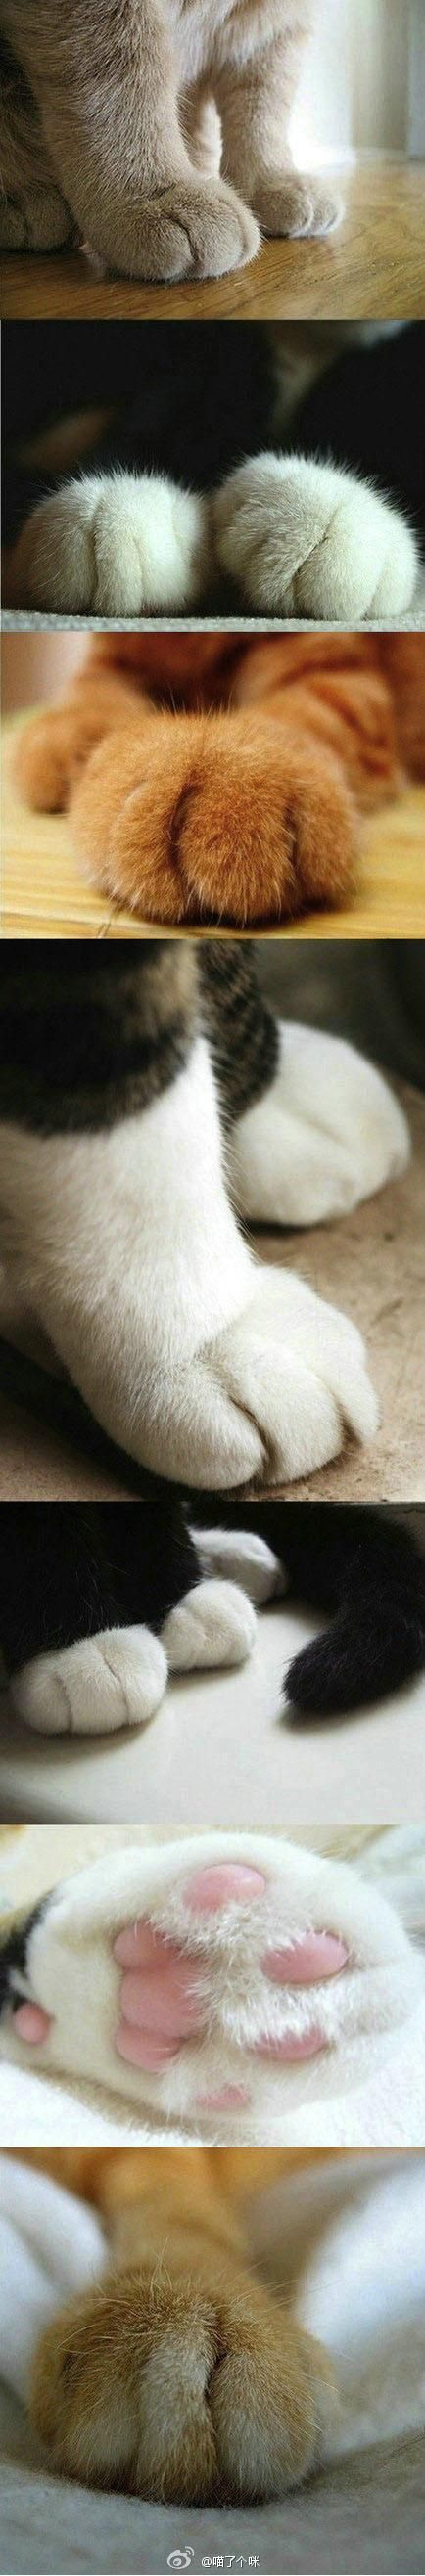 PAWS! My favorite!!!!!